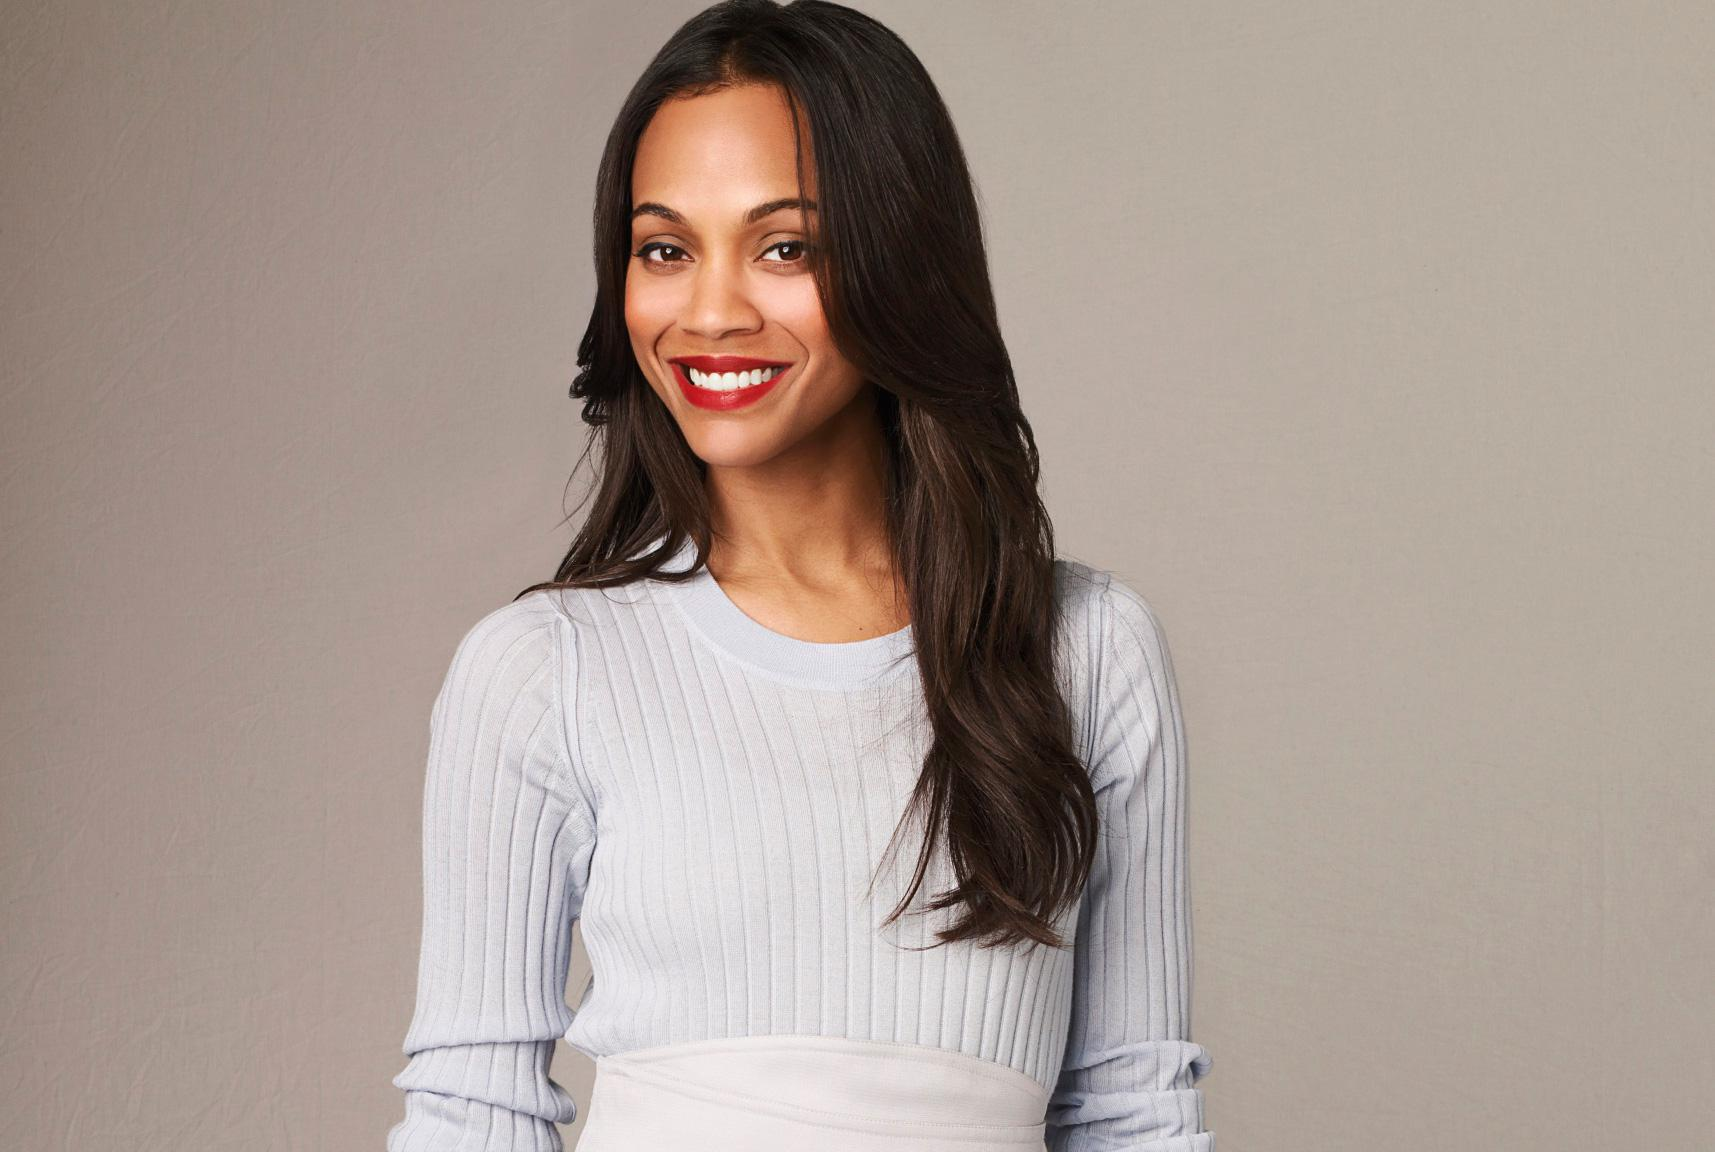 Zoe-Saldana-Height-Weight-Age-Bra-Size-Affairs-Body-Stats